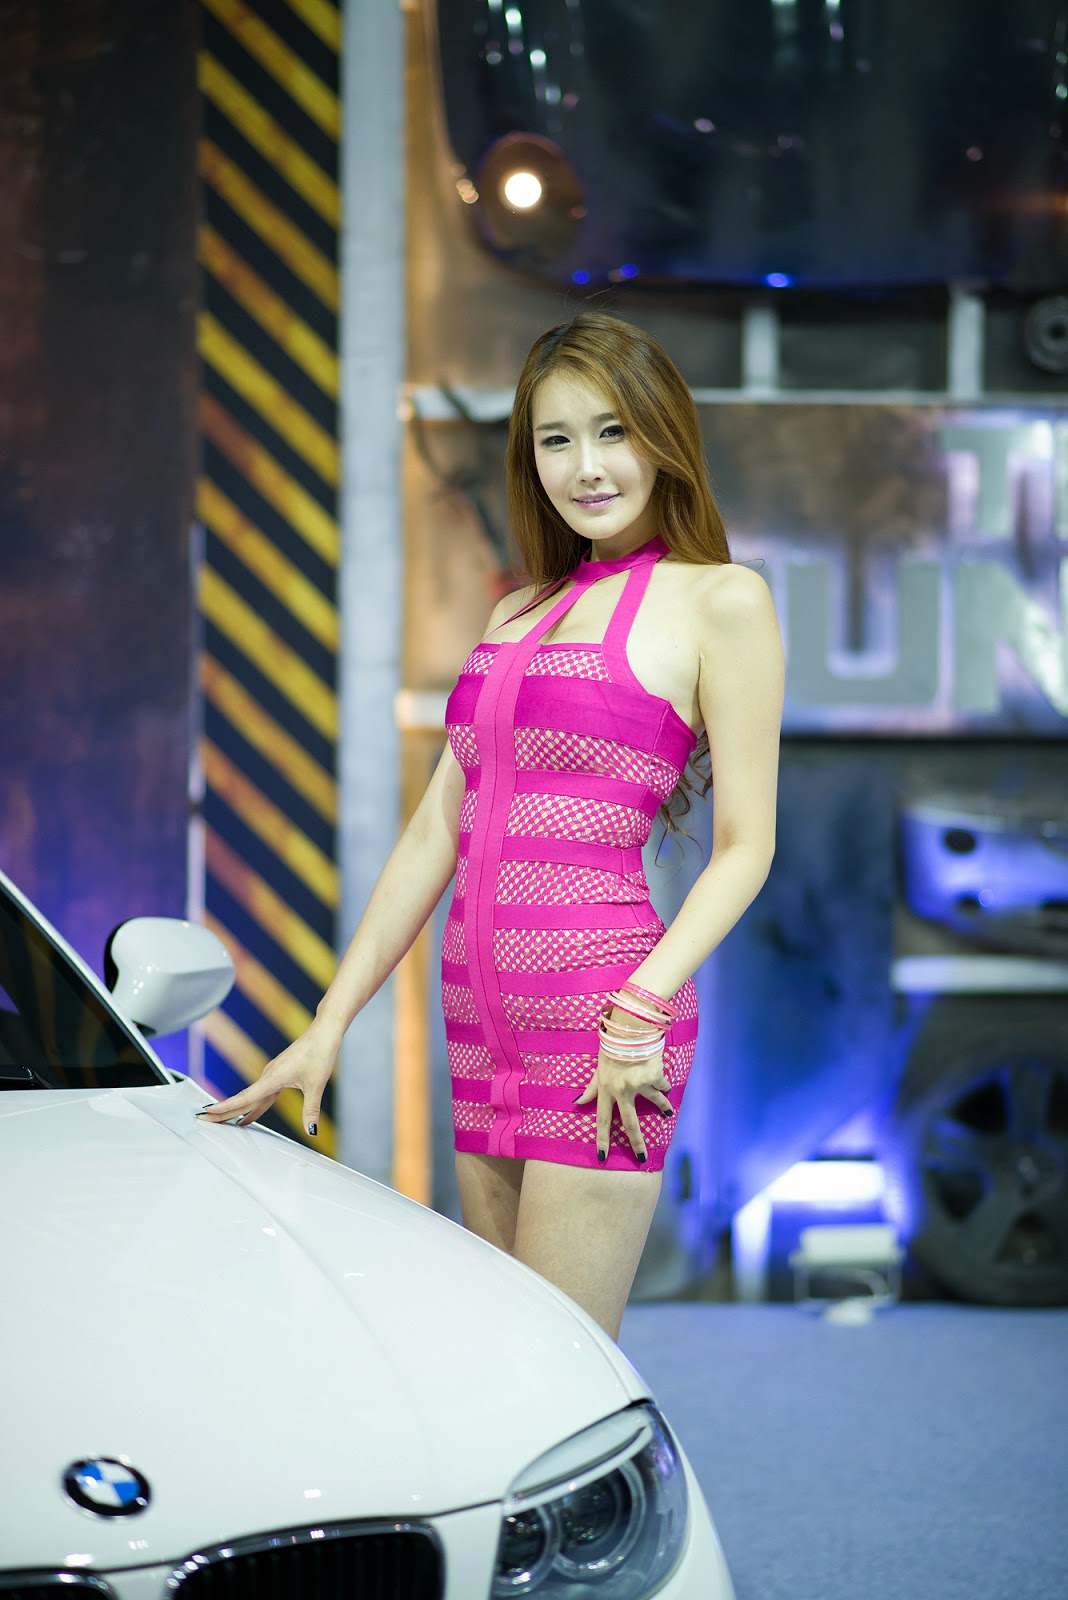 5 Lee Hyo Young - Seoul Auto Salon 2014 - very cute asian girl-girlcute4u.blogspot.com